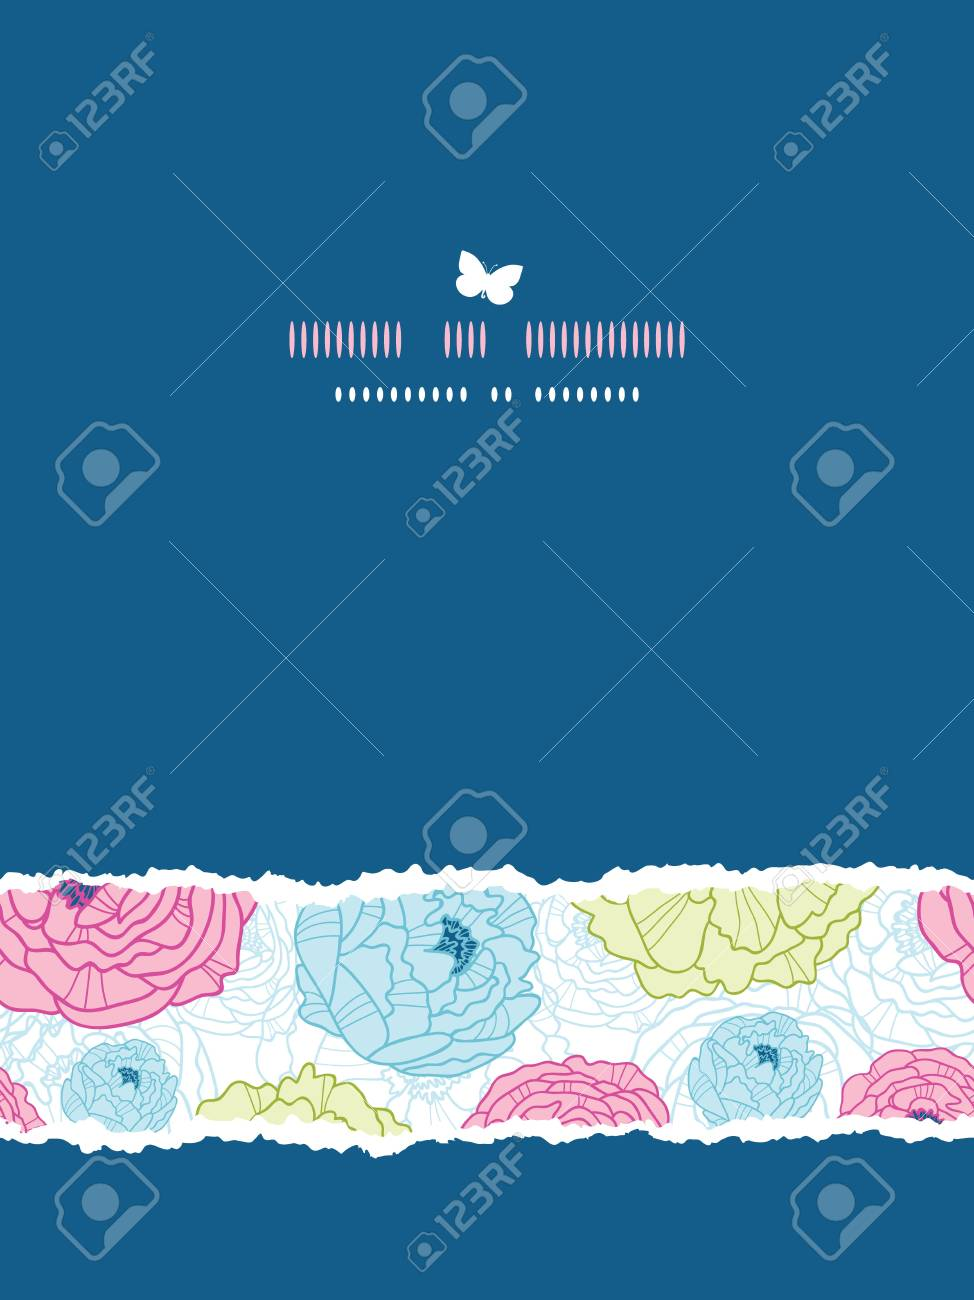 Lovely flowers vertical torn seamless pattern background Stock Vector - 18166830